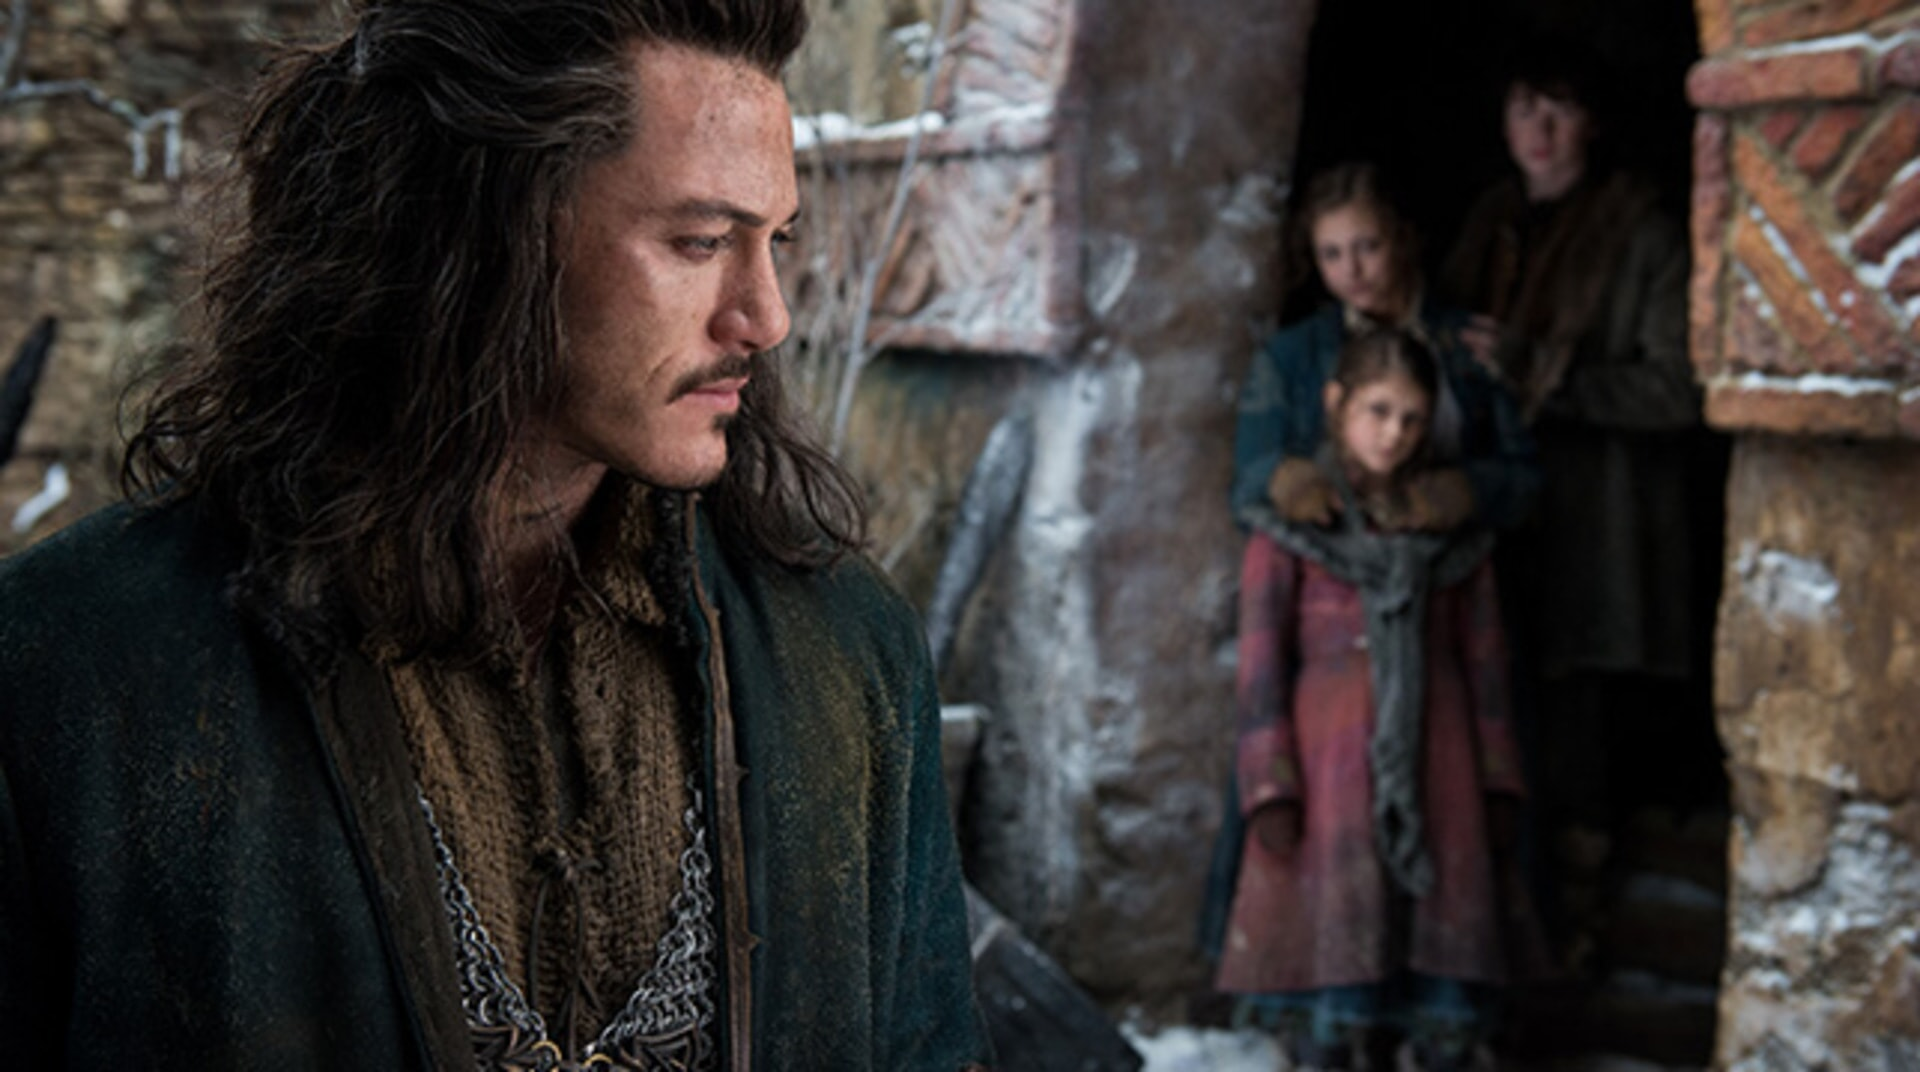 The Hobbit: The Battle of the Five Armies - Image 15